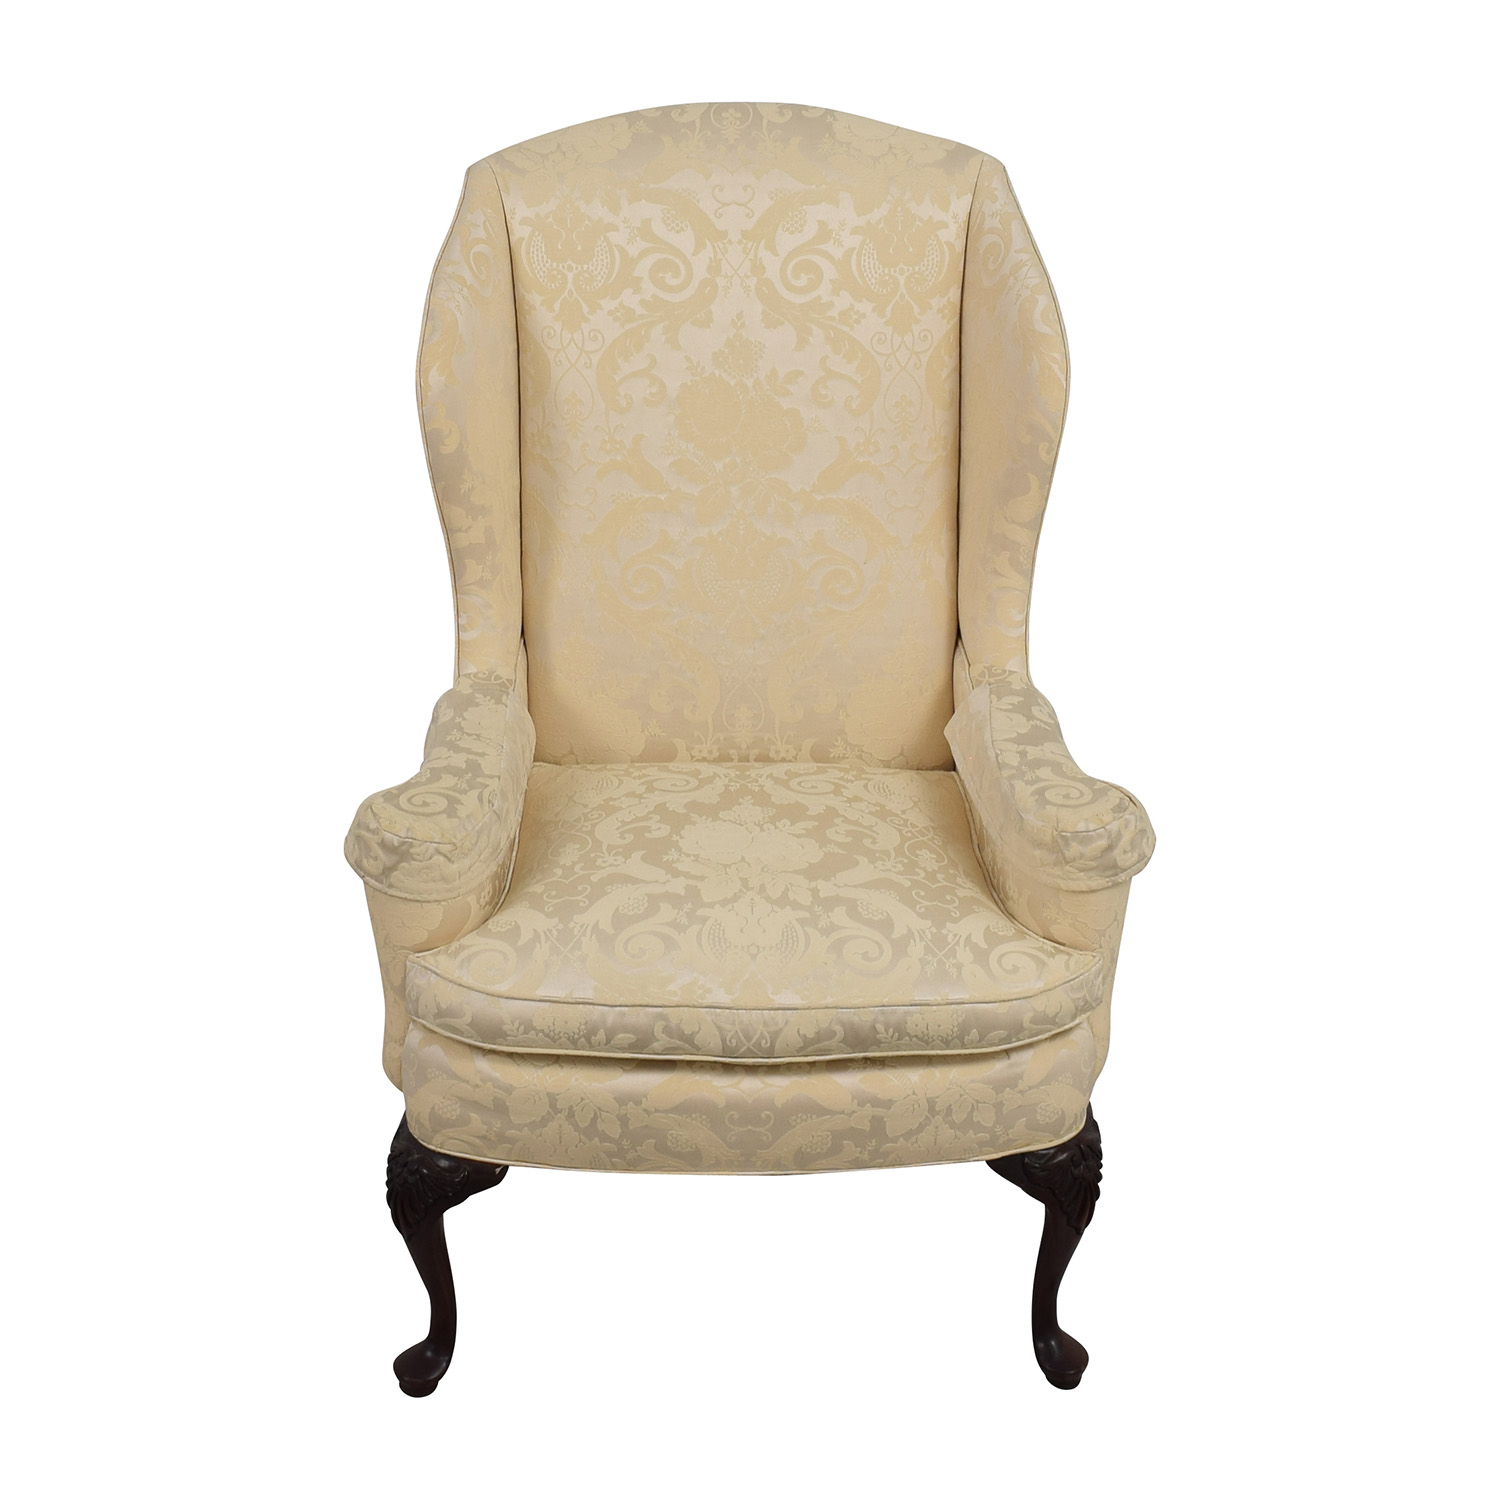 Croydon Furniture Croydon Furniture Queen Anne White Upholstered Chair price